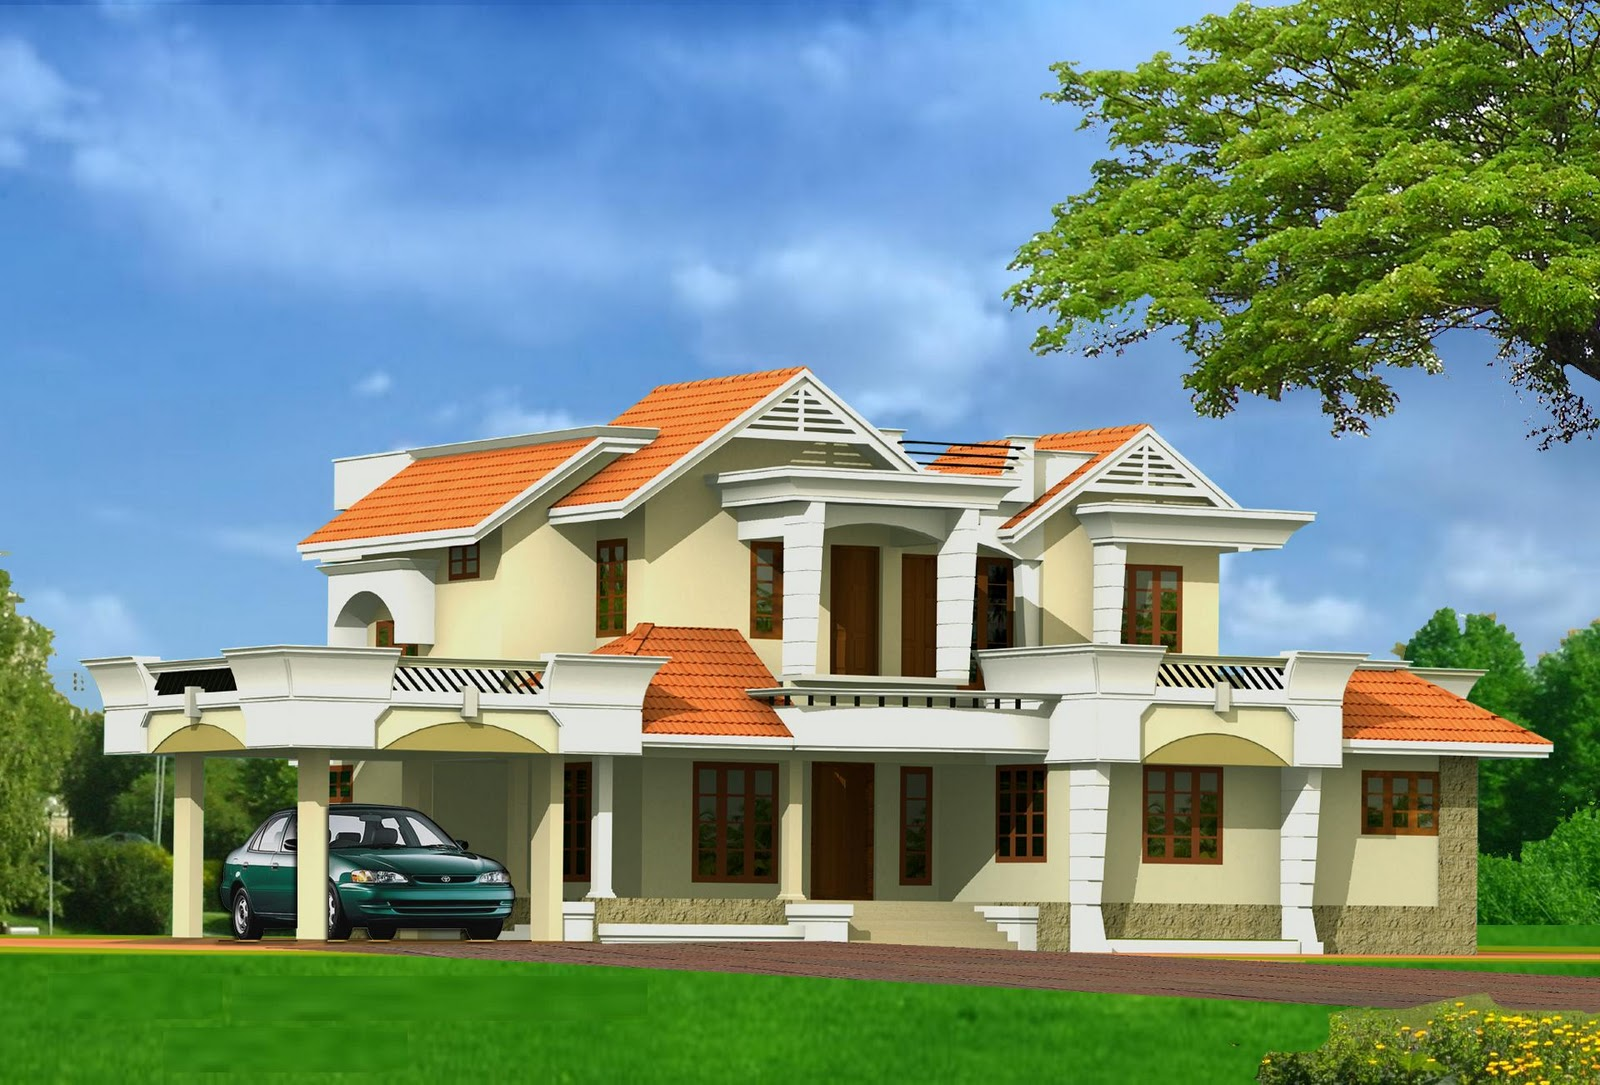 House plans and design architectural designs of for Residential architect